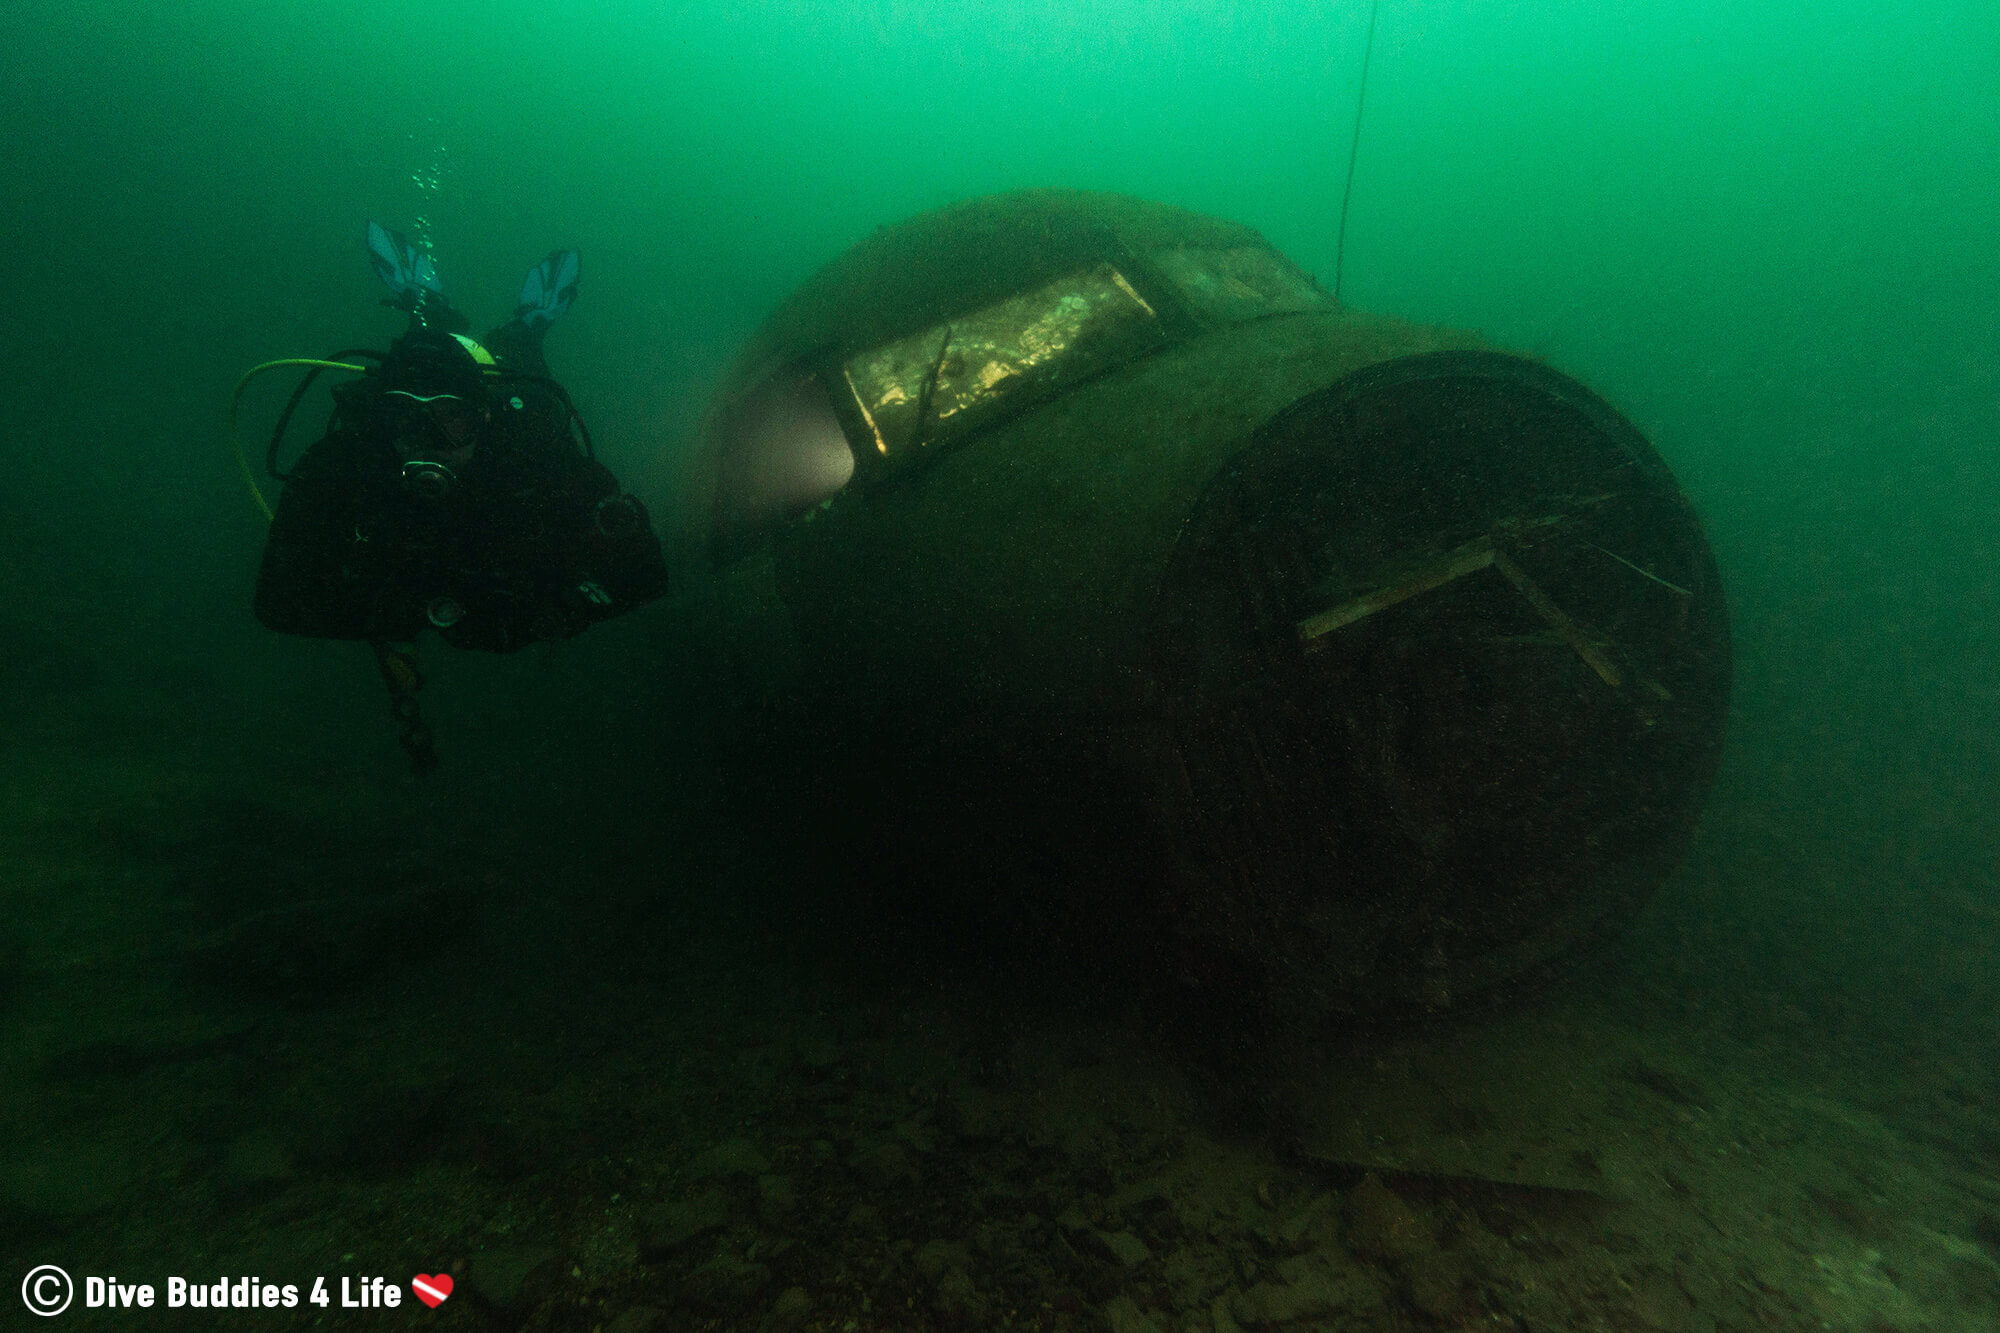 Joey Displaying Neutral Buoyancy In The Vobster Inland Quay With A Sunken Airplane, England, UK